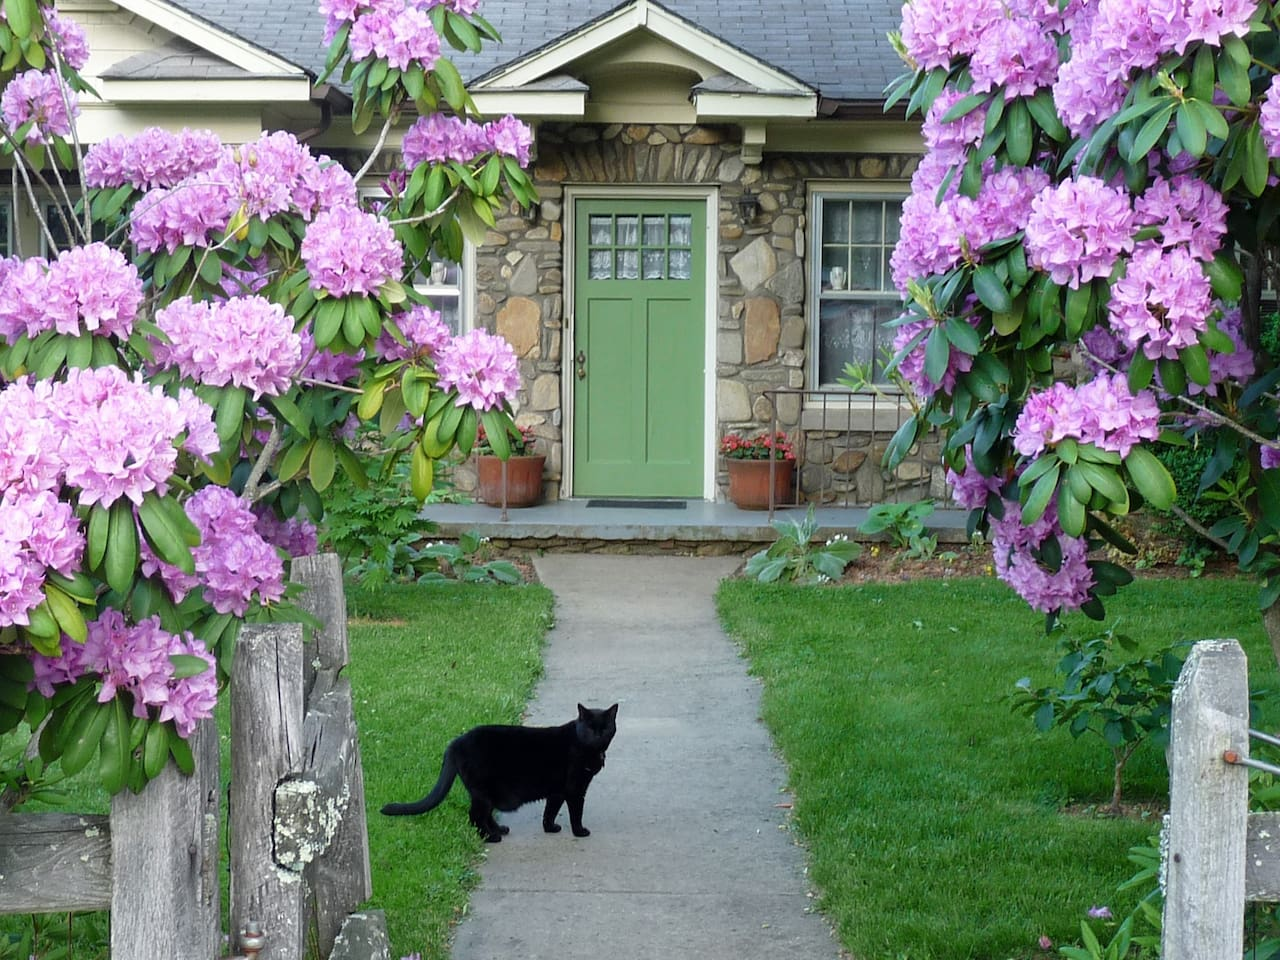 Jim the cat invites you in the front door of the stone cottage.